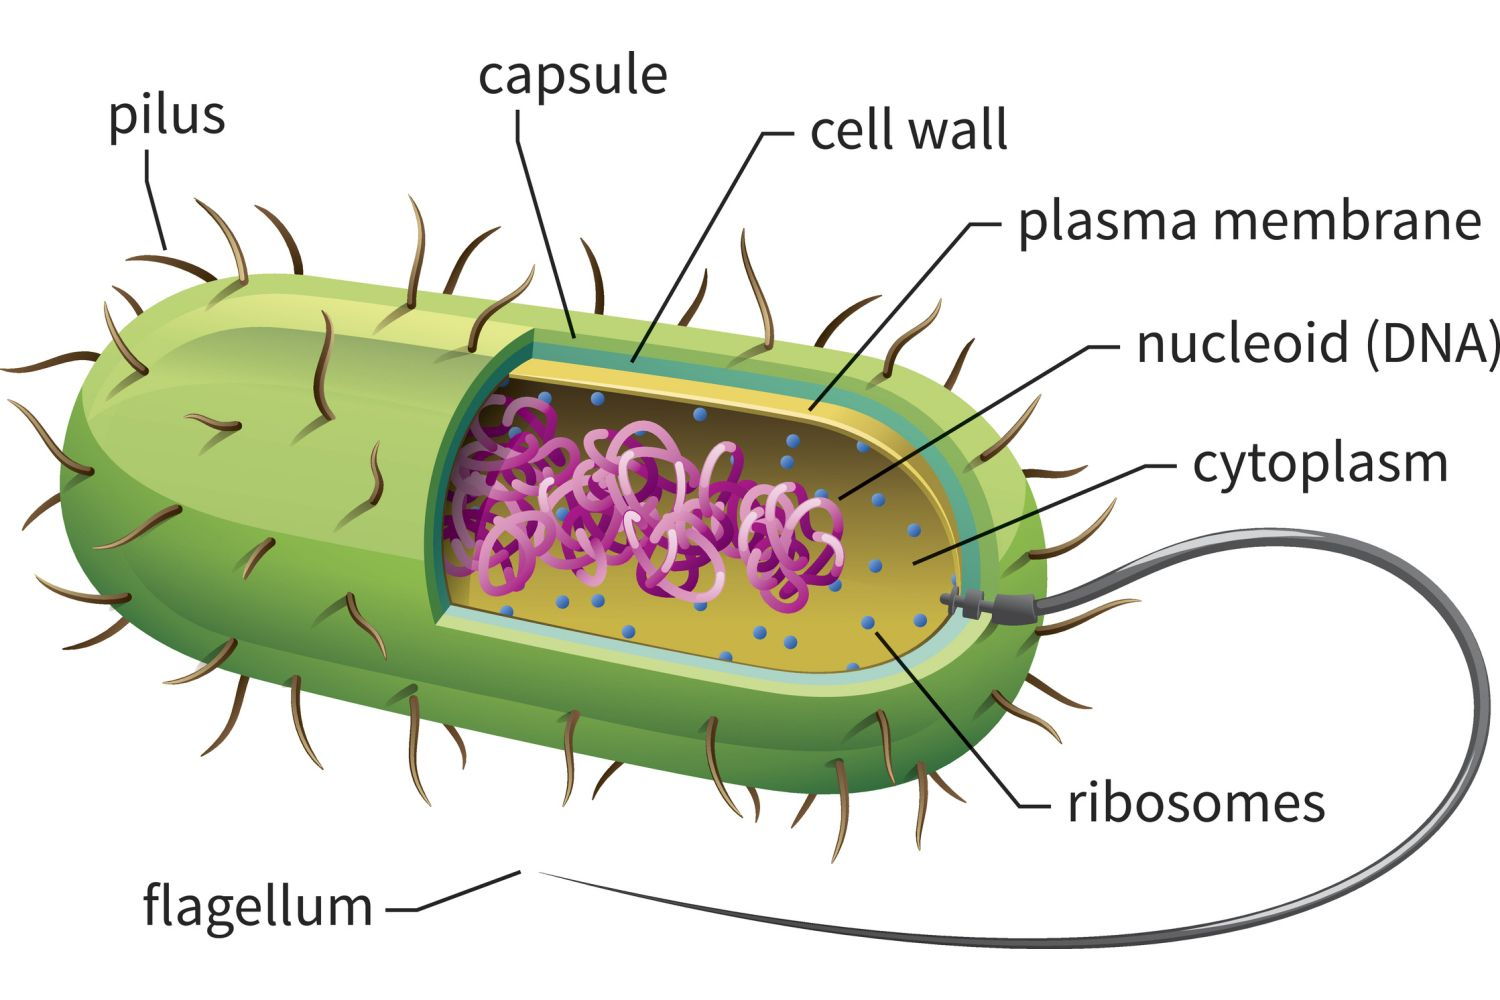 microbiology prokaryotic cell diagram labeled erd entity relationship examples cells structure function and definition bacterial